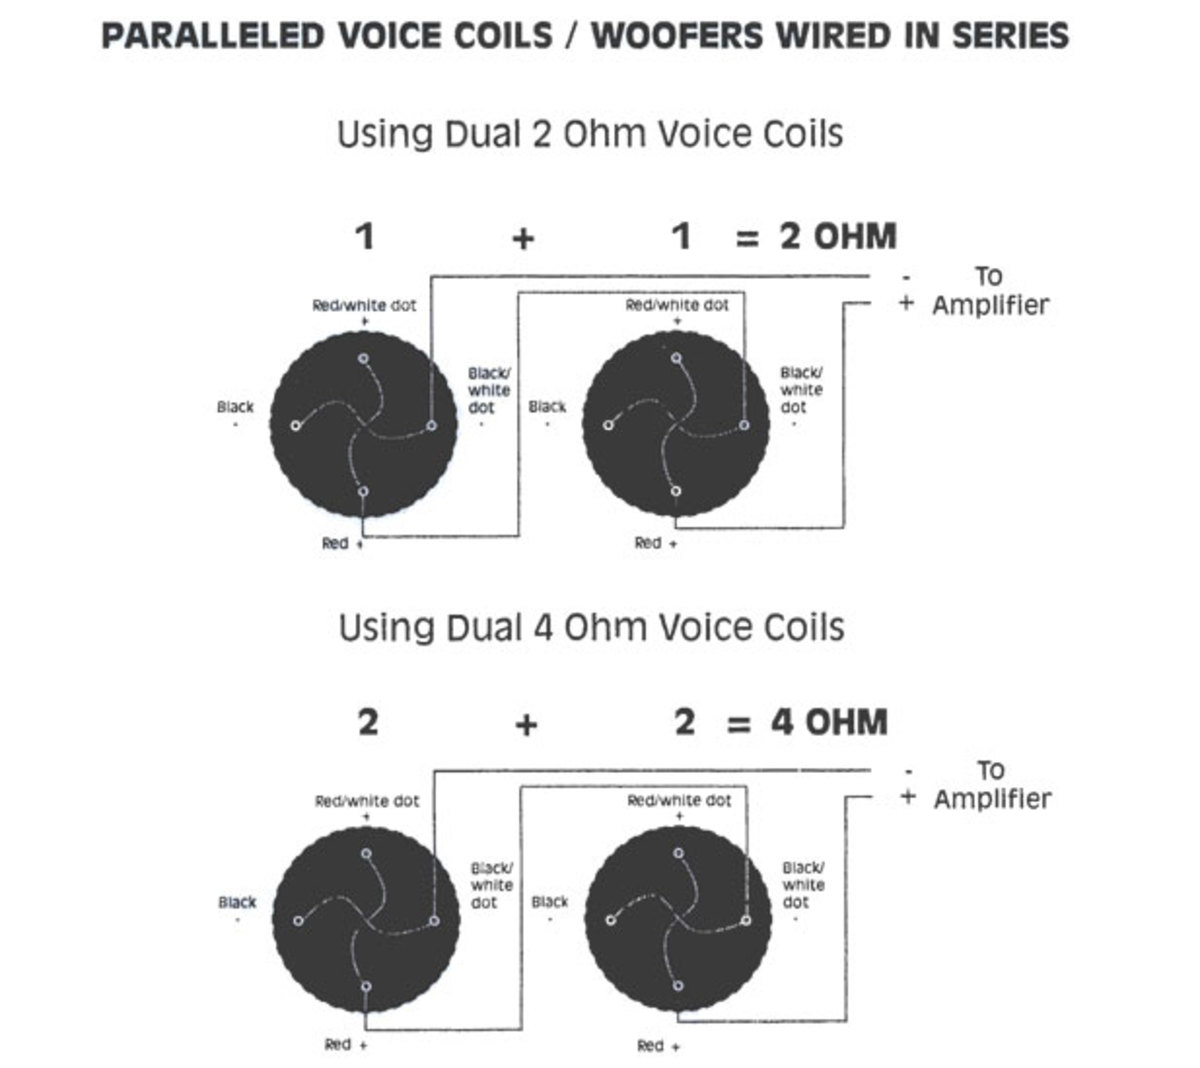 subwoofer wiring diagram dual 2 ohm subwoofer 2 ohm dvc sub wiring diagram jodebal com on subwoofer wiring diagram dual 2 ohm